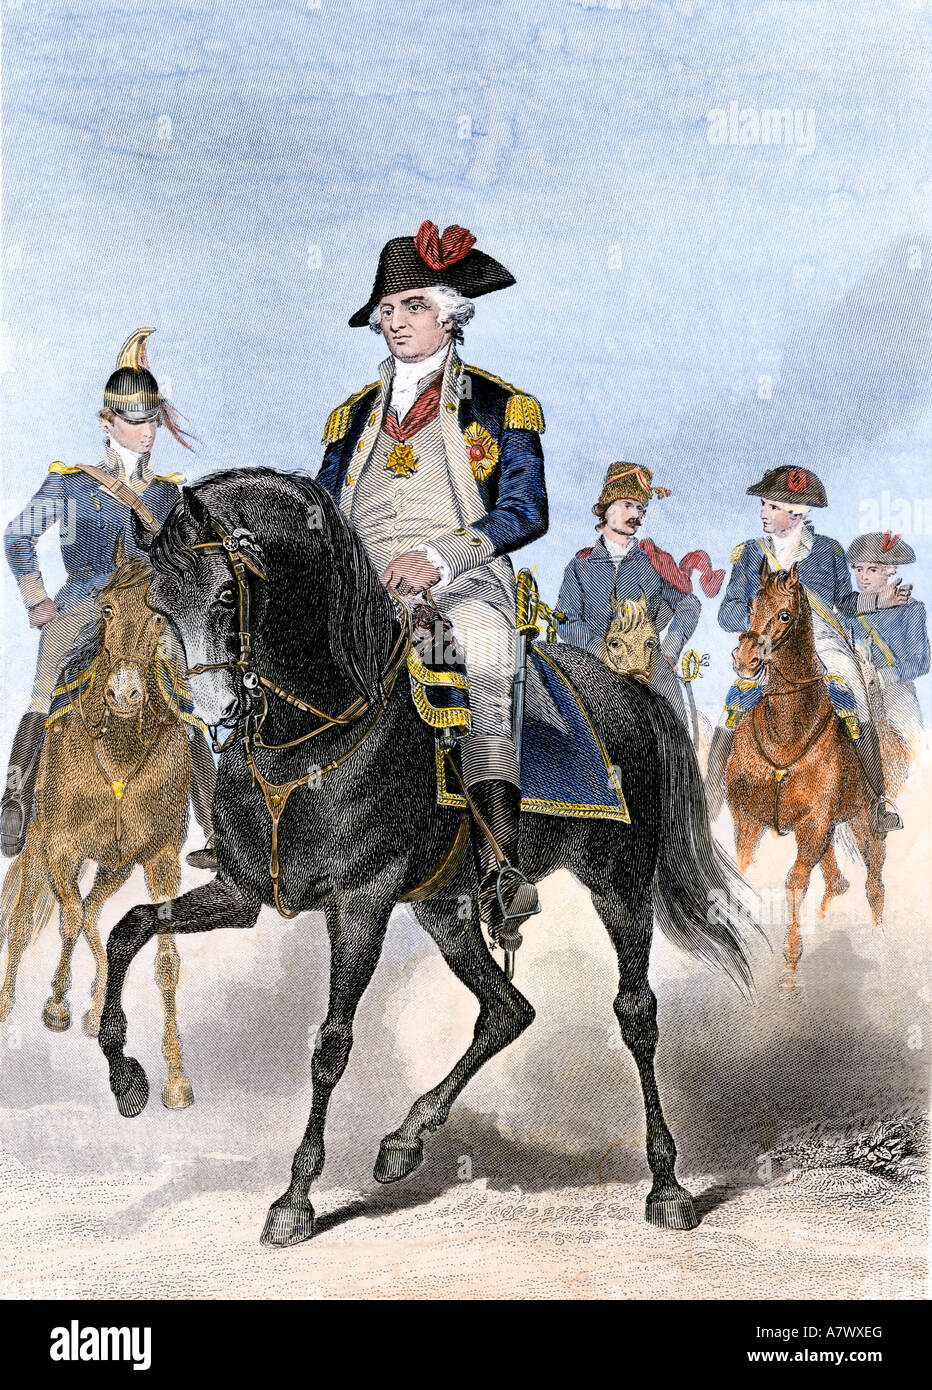 Prussian Baron von Steuben on horseback with Continental Army officers at Valley Forge - Stock Image